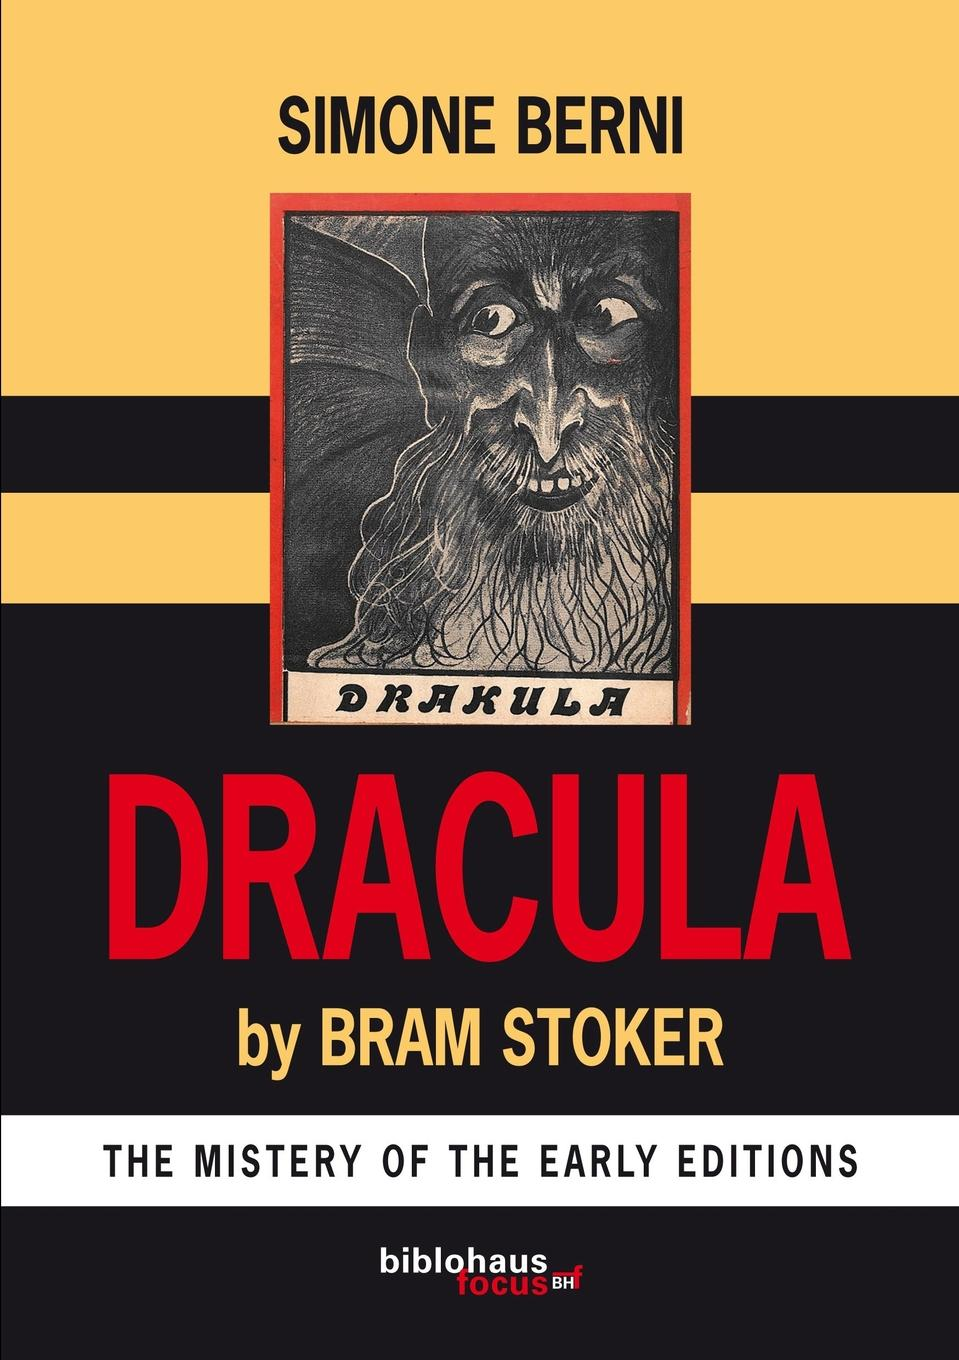 Simone Berni Dracula by Bram Stoker The Mystery of Early Editions